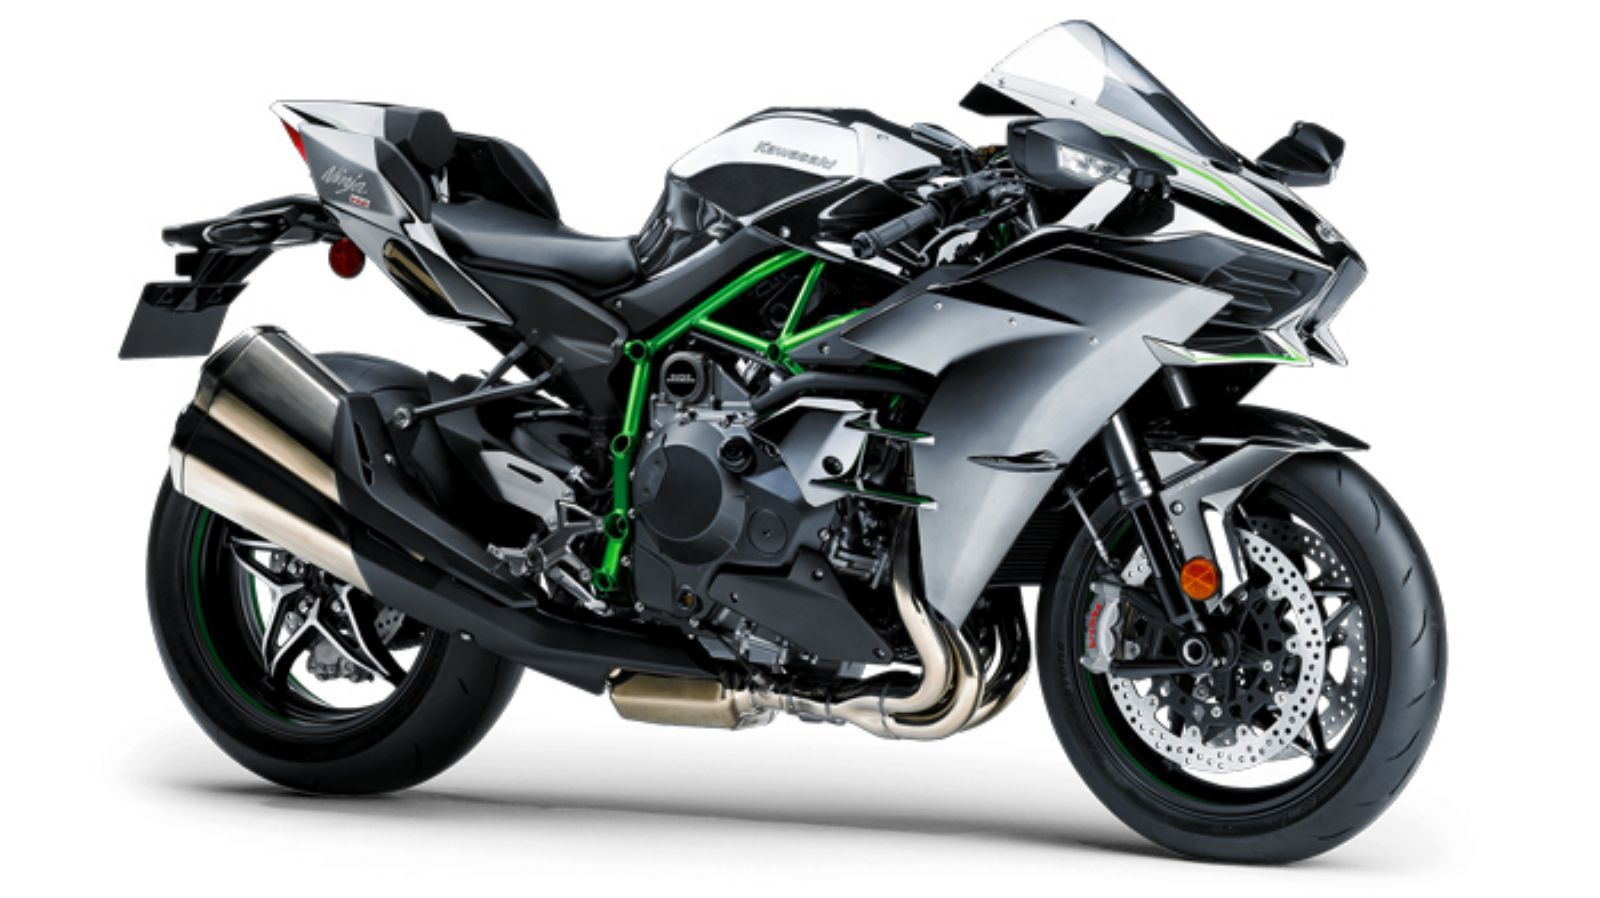 turbo street kawasaki h2 h2r kawasaki h2 ninja kawasaki h2. Black Bedroom Furniture Sets. Home Design Ideas